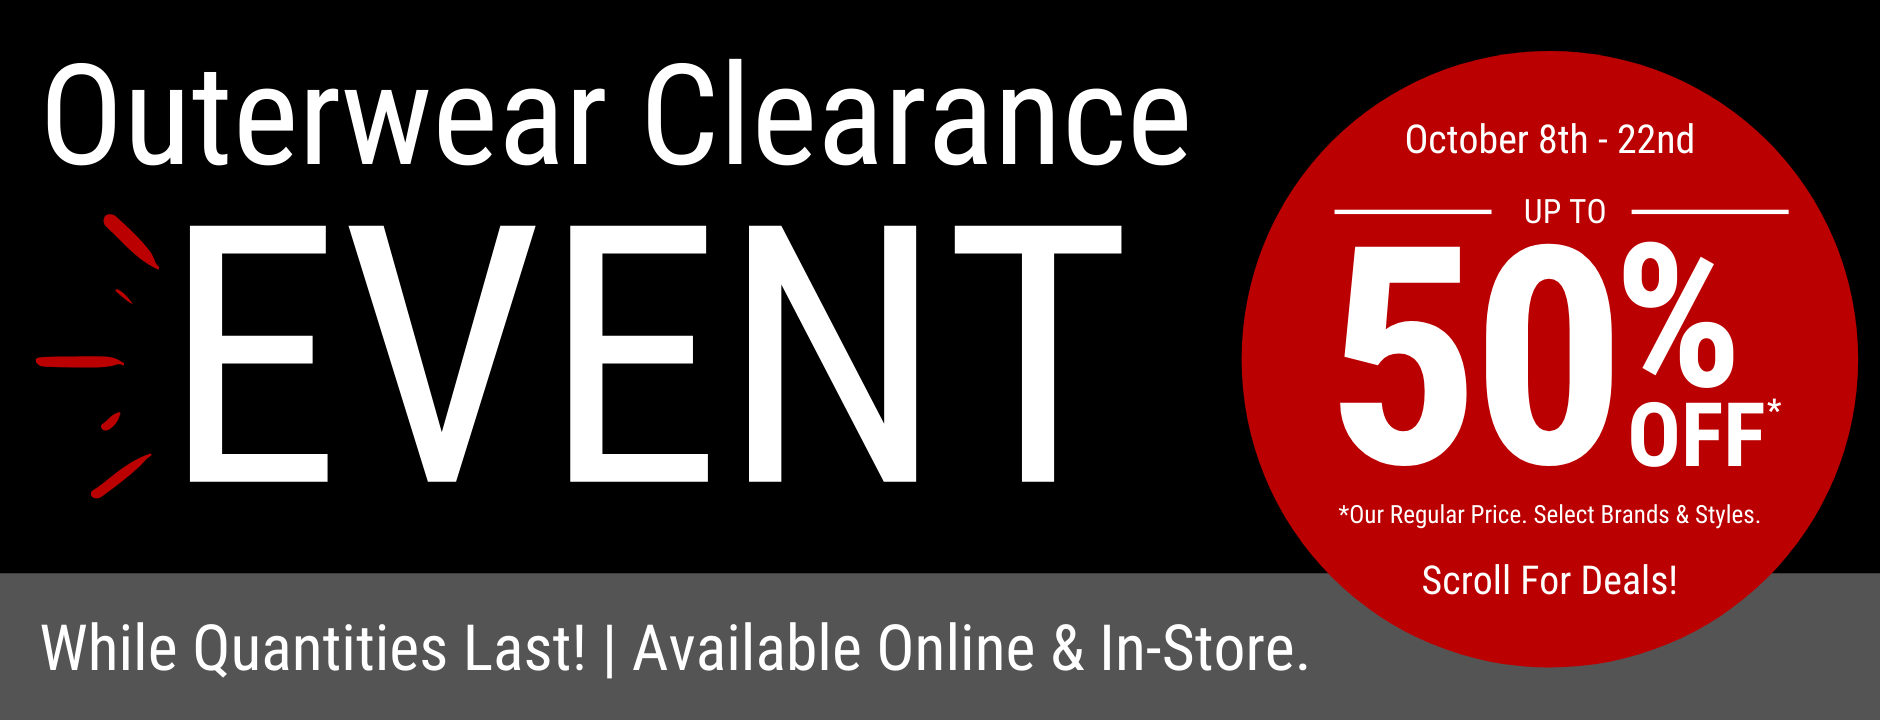 Outerwear Clearance Event